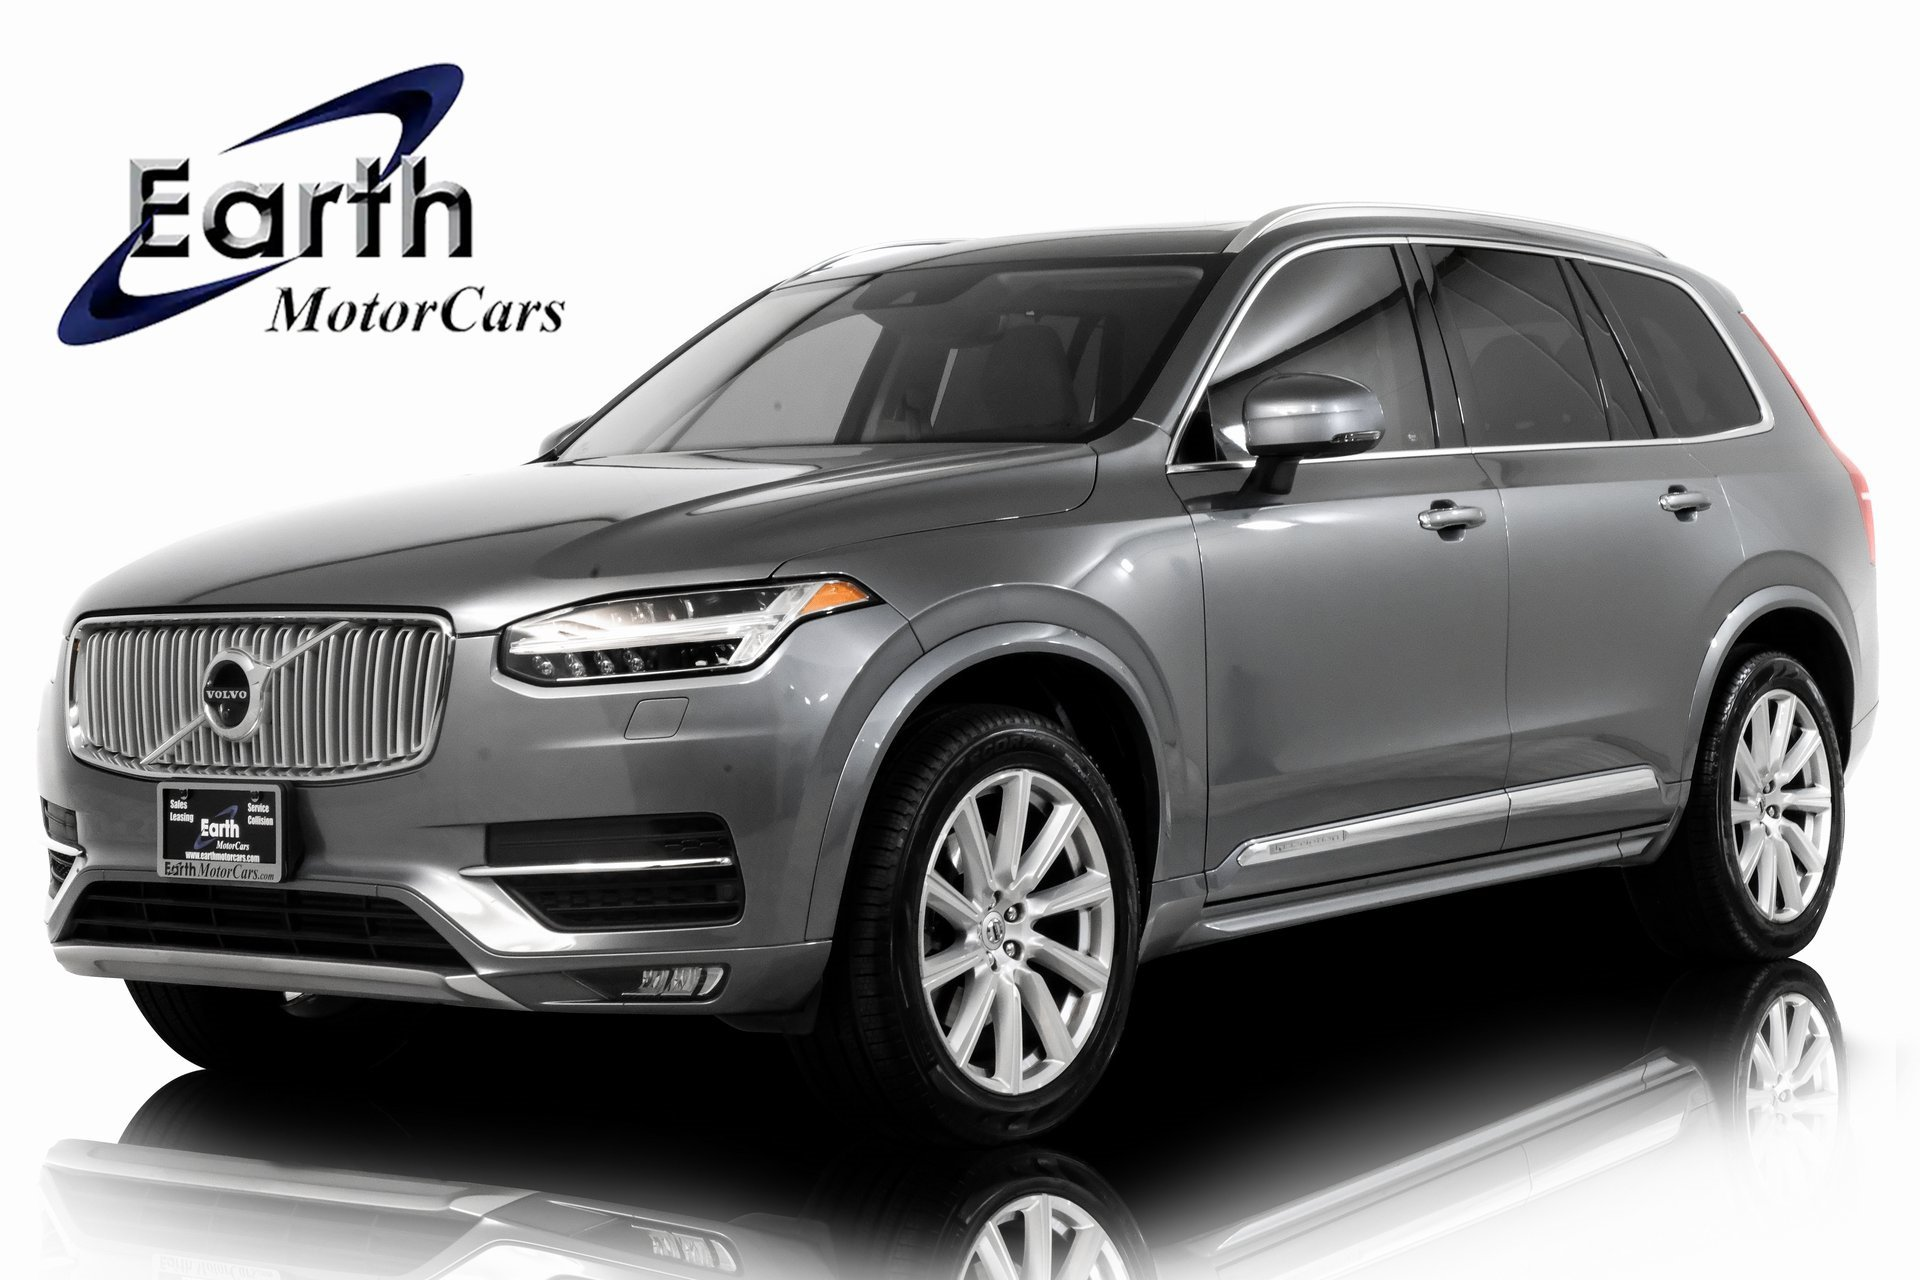 2016 Volvo XC90 AWD T6 Inscription image